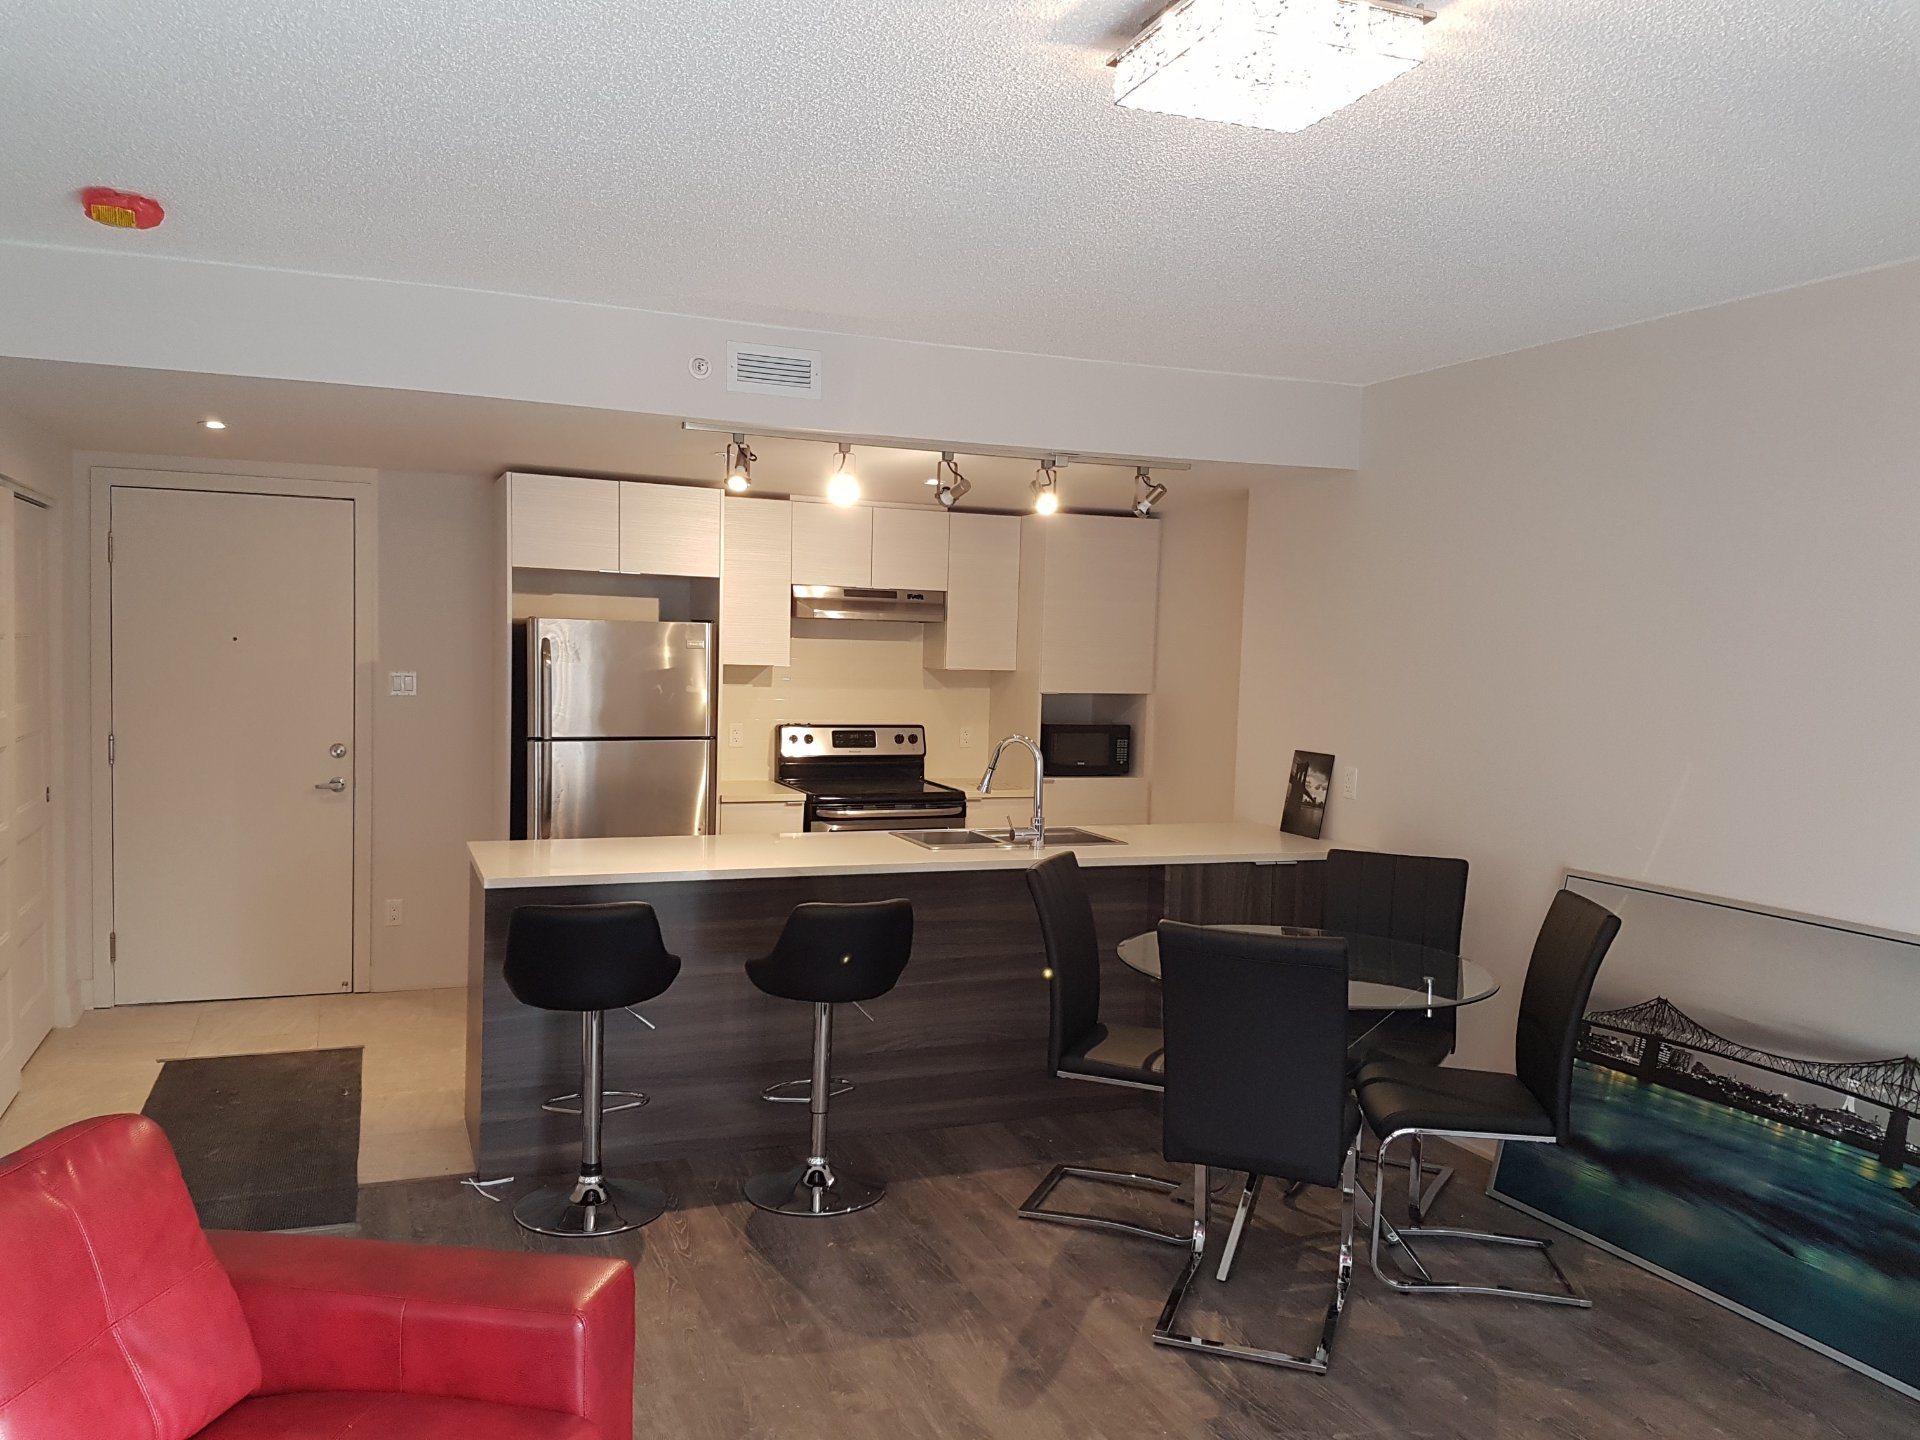 Condo for sale chomedey laval buy condo chomedey laval salon salle manger solutioingenieria Images